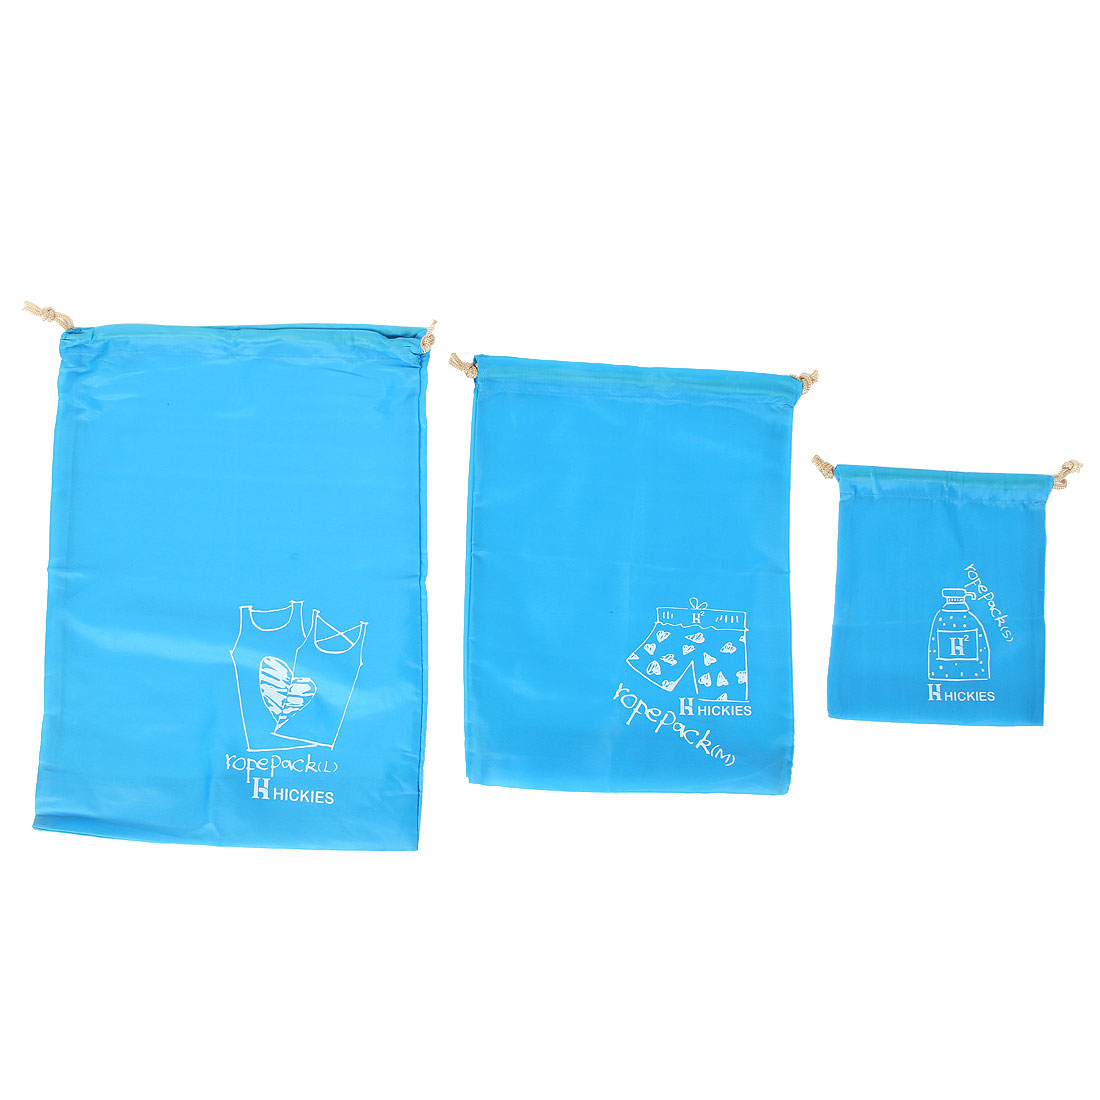 3 in 1 Travel Clothes Storage Organizer Drawstring Bags Blue